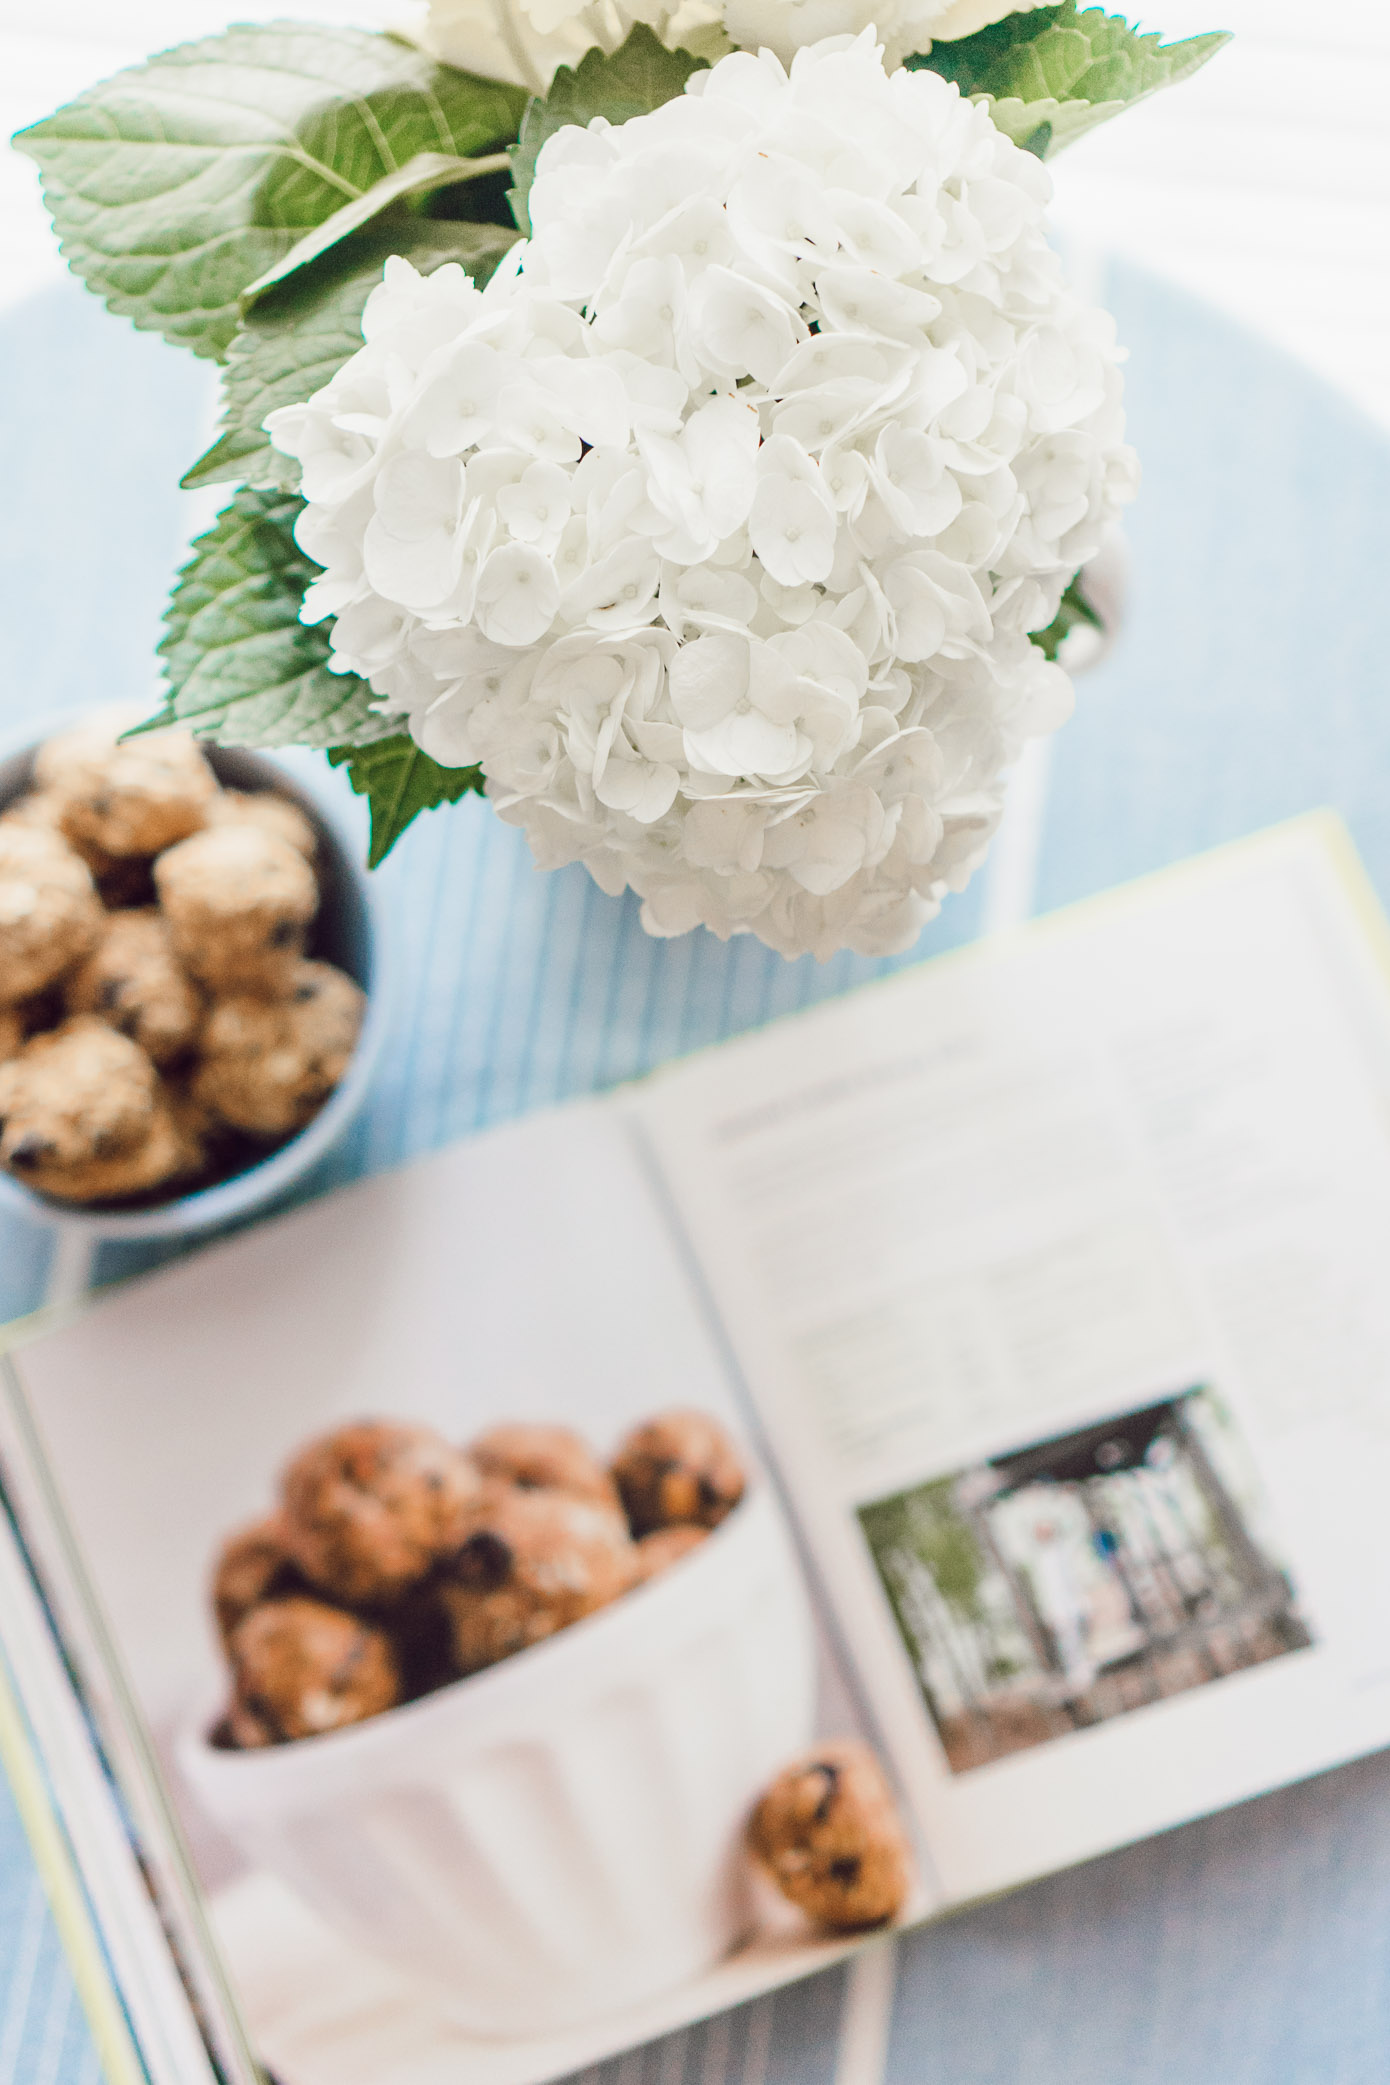 Oatmeal Raisin Energy Bites, A Healthy Cookbook You Need In Your Kitchen featured on Louella Reese Blog